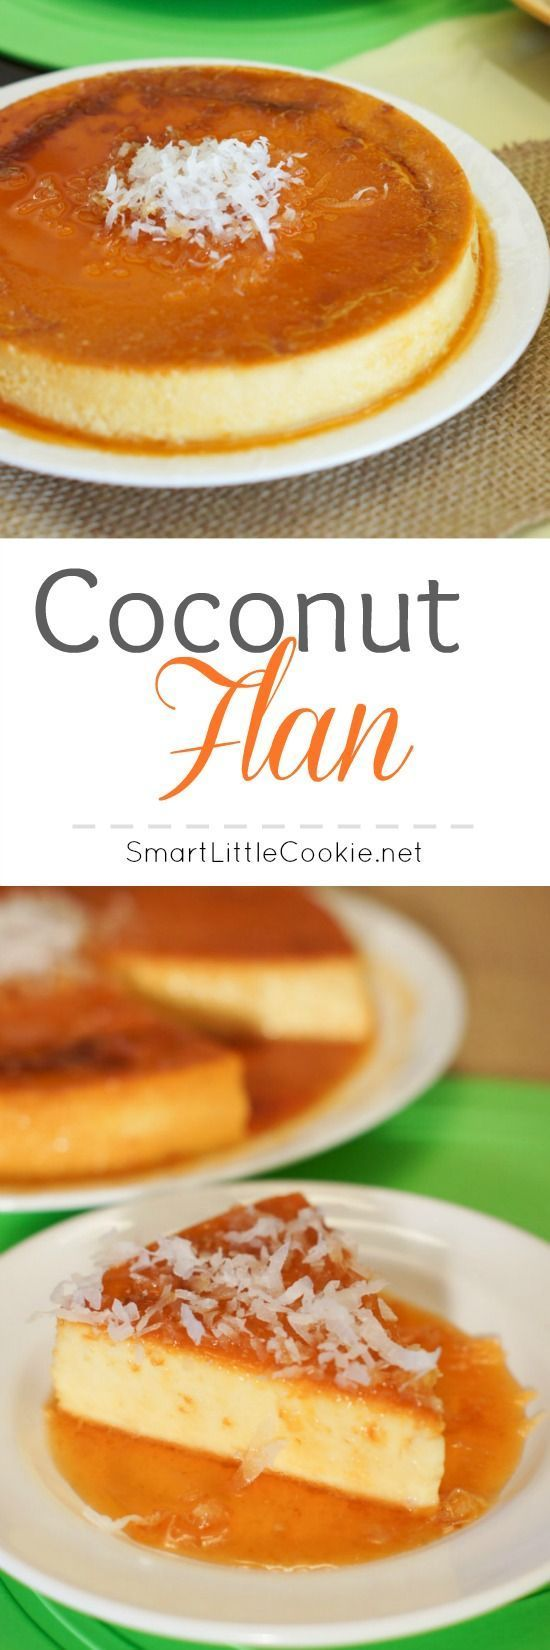 Gah - wouldn't this go great with a cuppa coffee when a friend stops in?! ;-) Coconut Flan | http://SmartLittleCookie.net